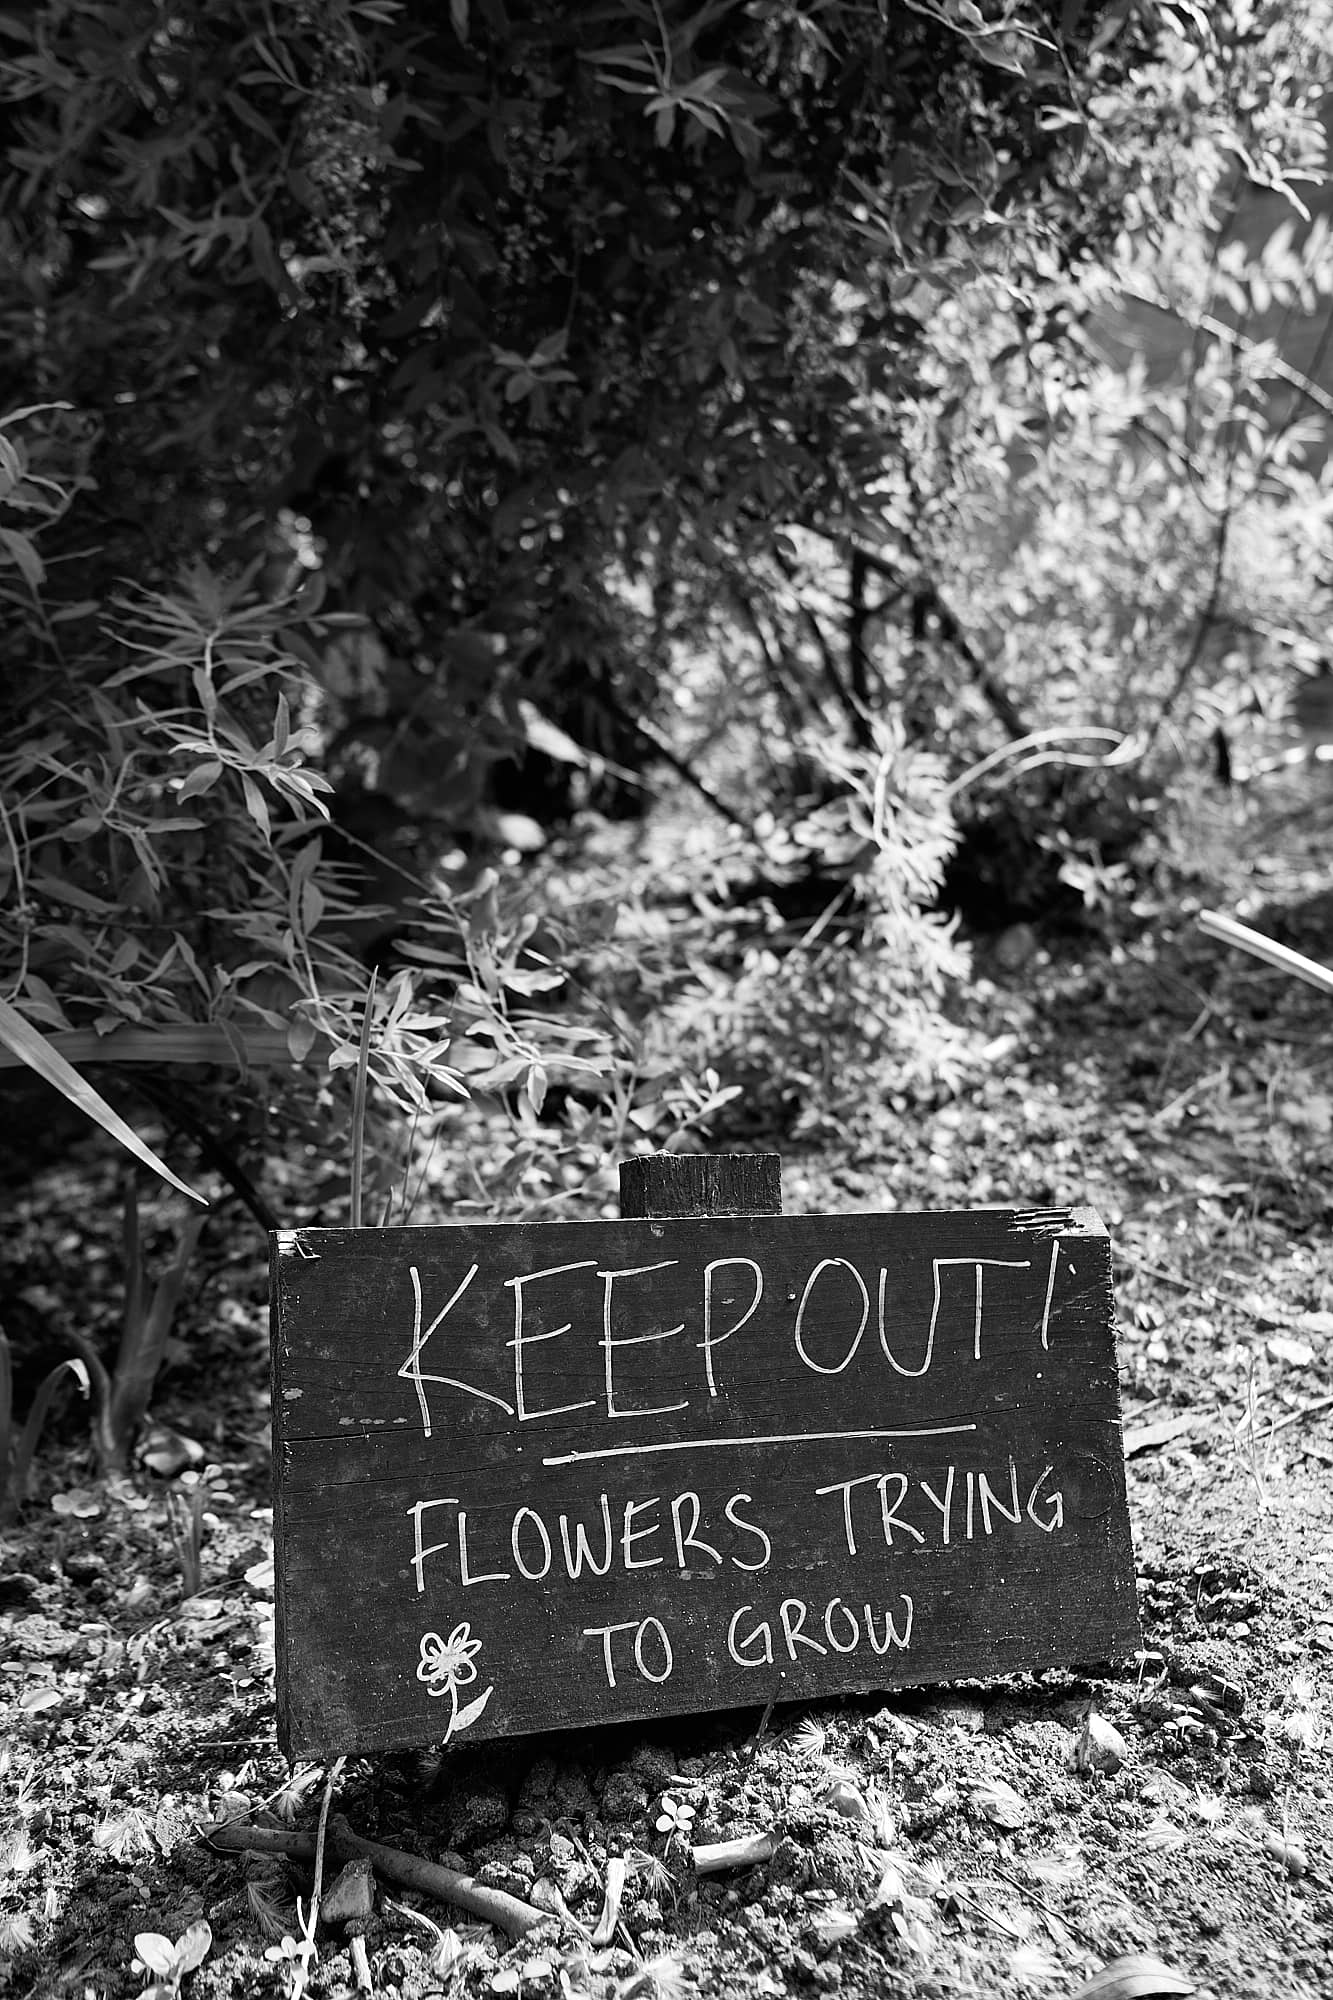 flowerbed Keep Out sign